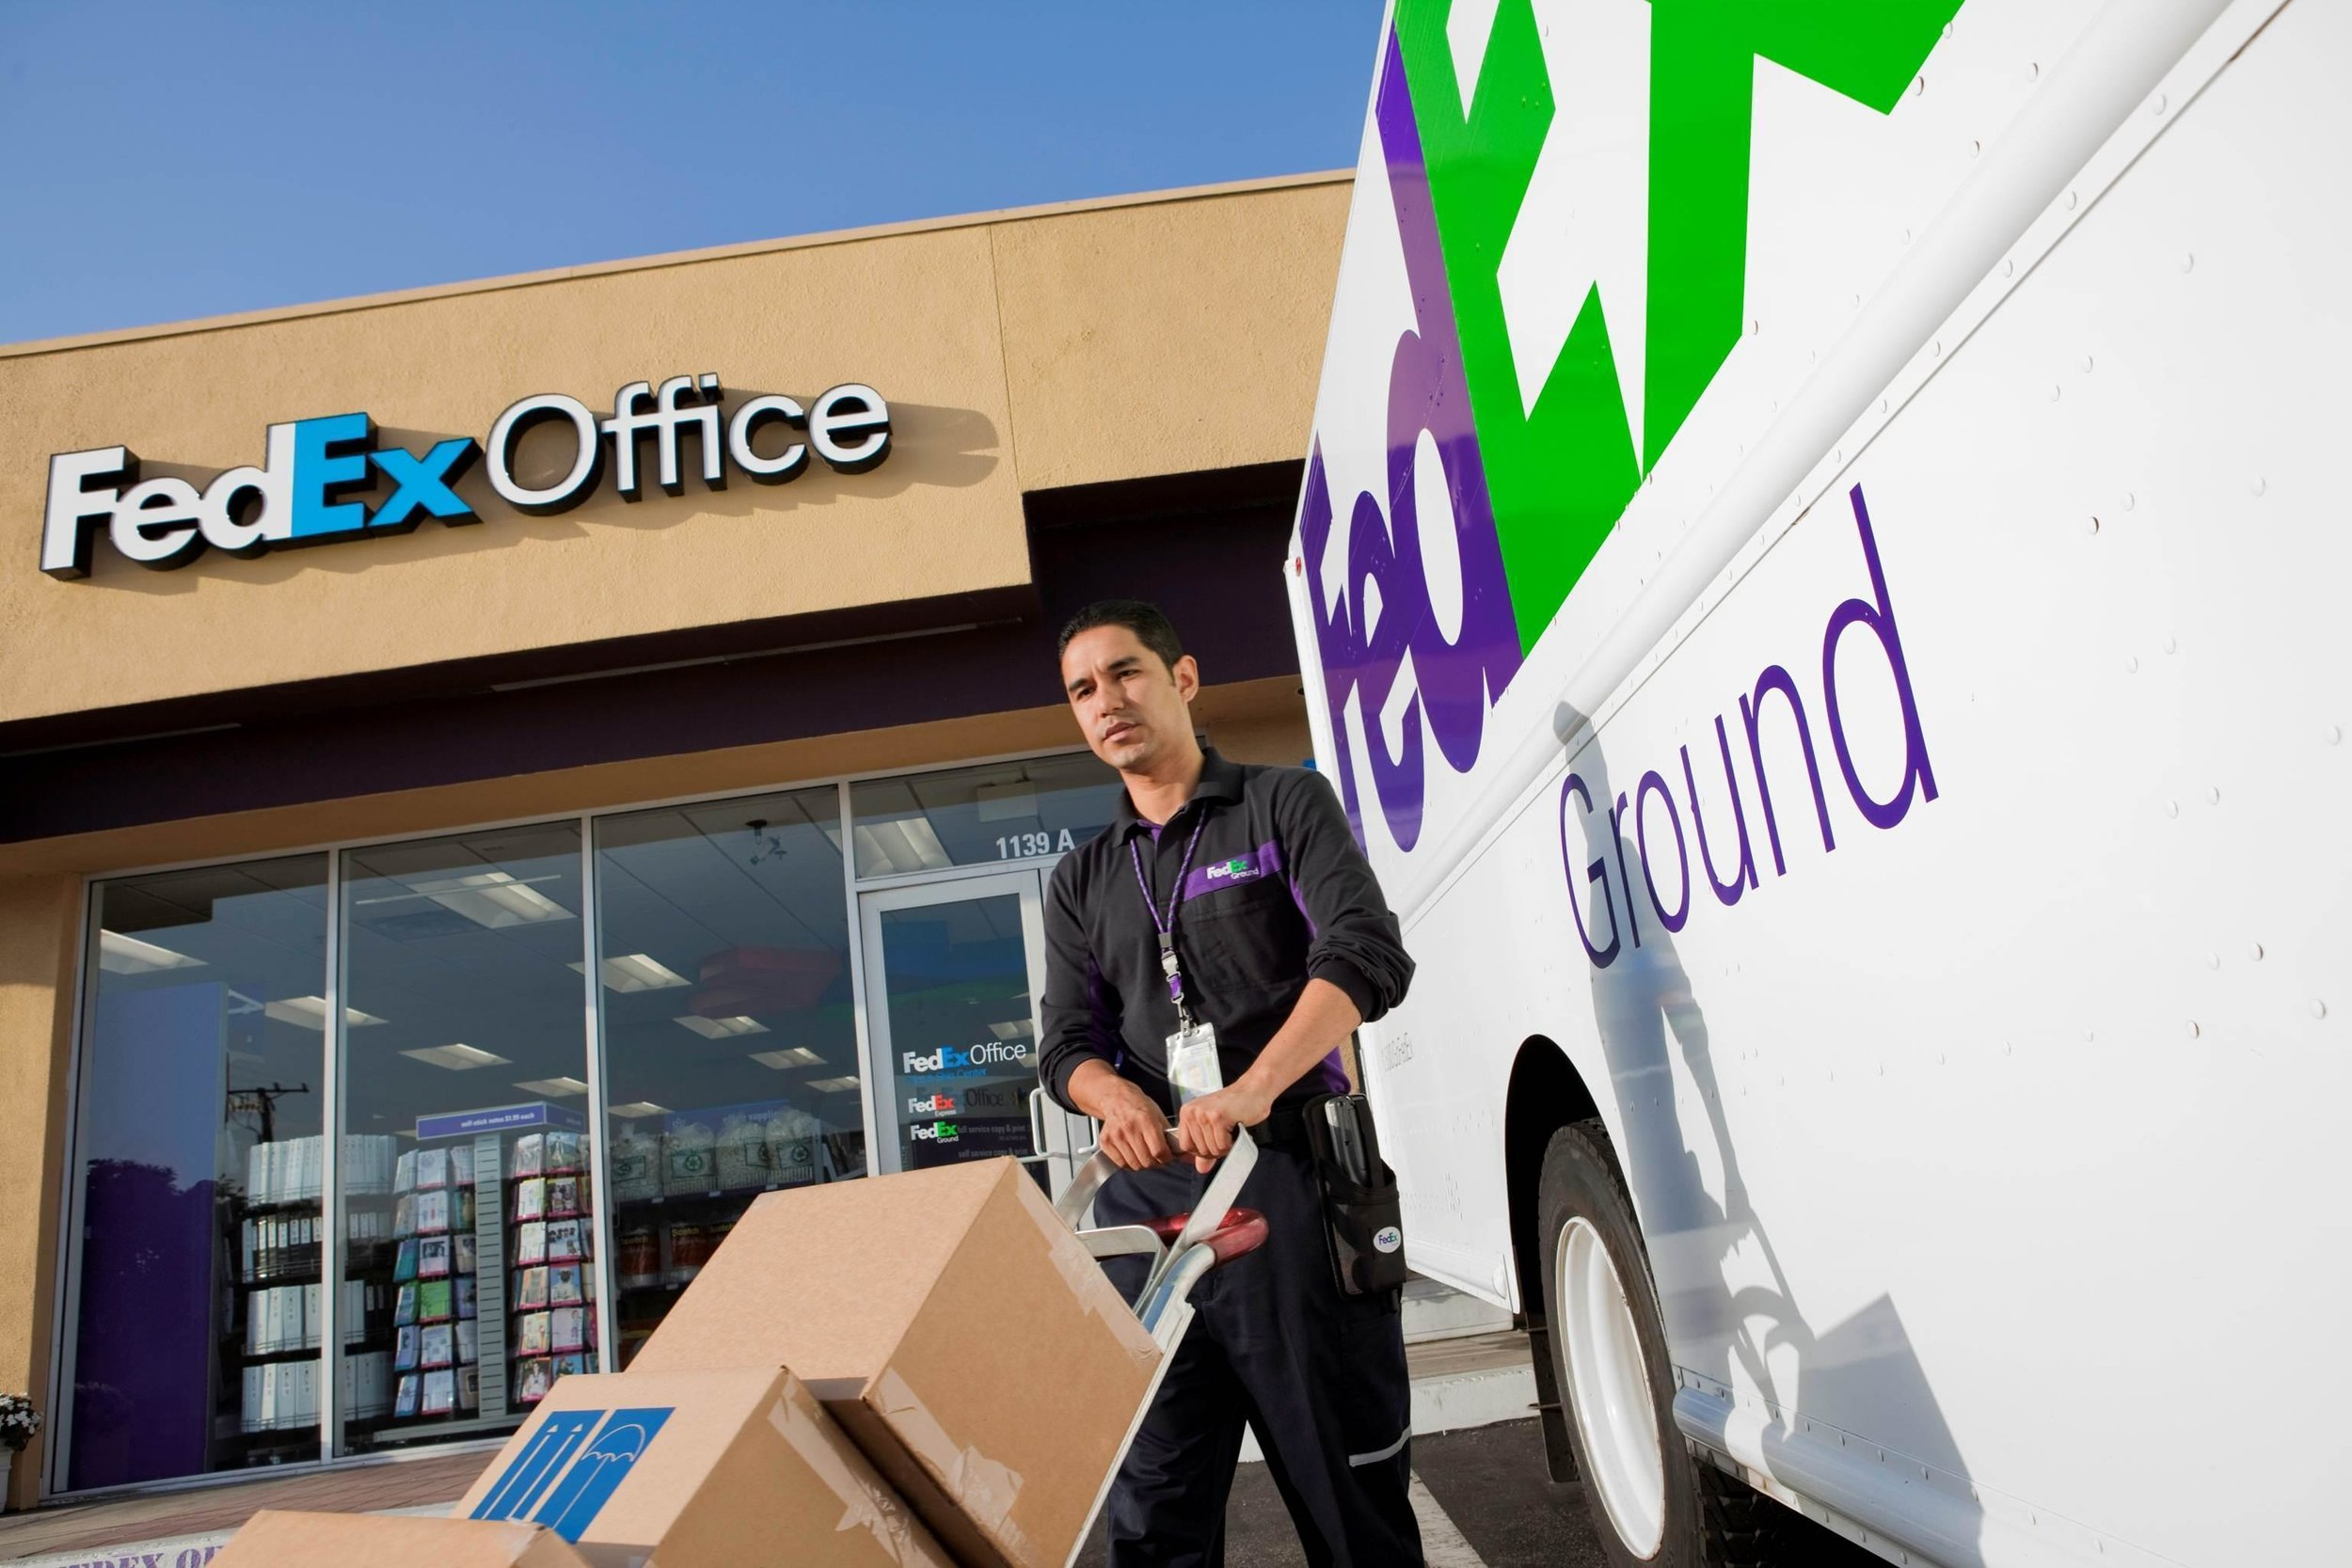 FedEx Office in Wilmington, Delaware, your destination for printing, copying, packaging and shipping. Come try our professional printers for color copies, signs & banners, business cards, and presentations. You can even print directly from your mobile device.